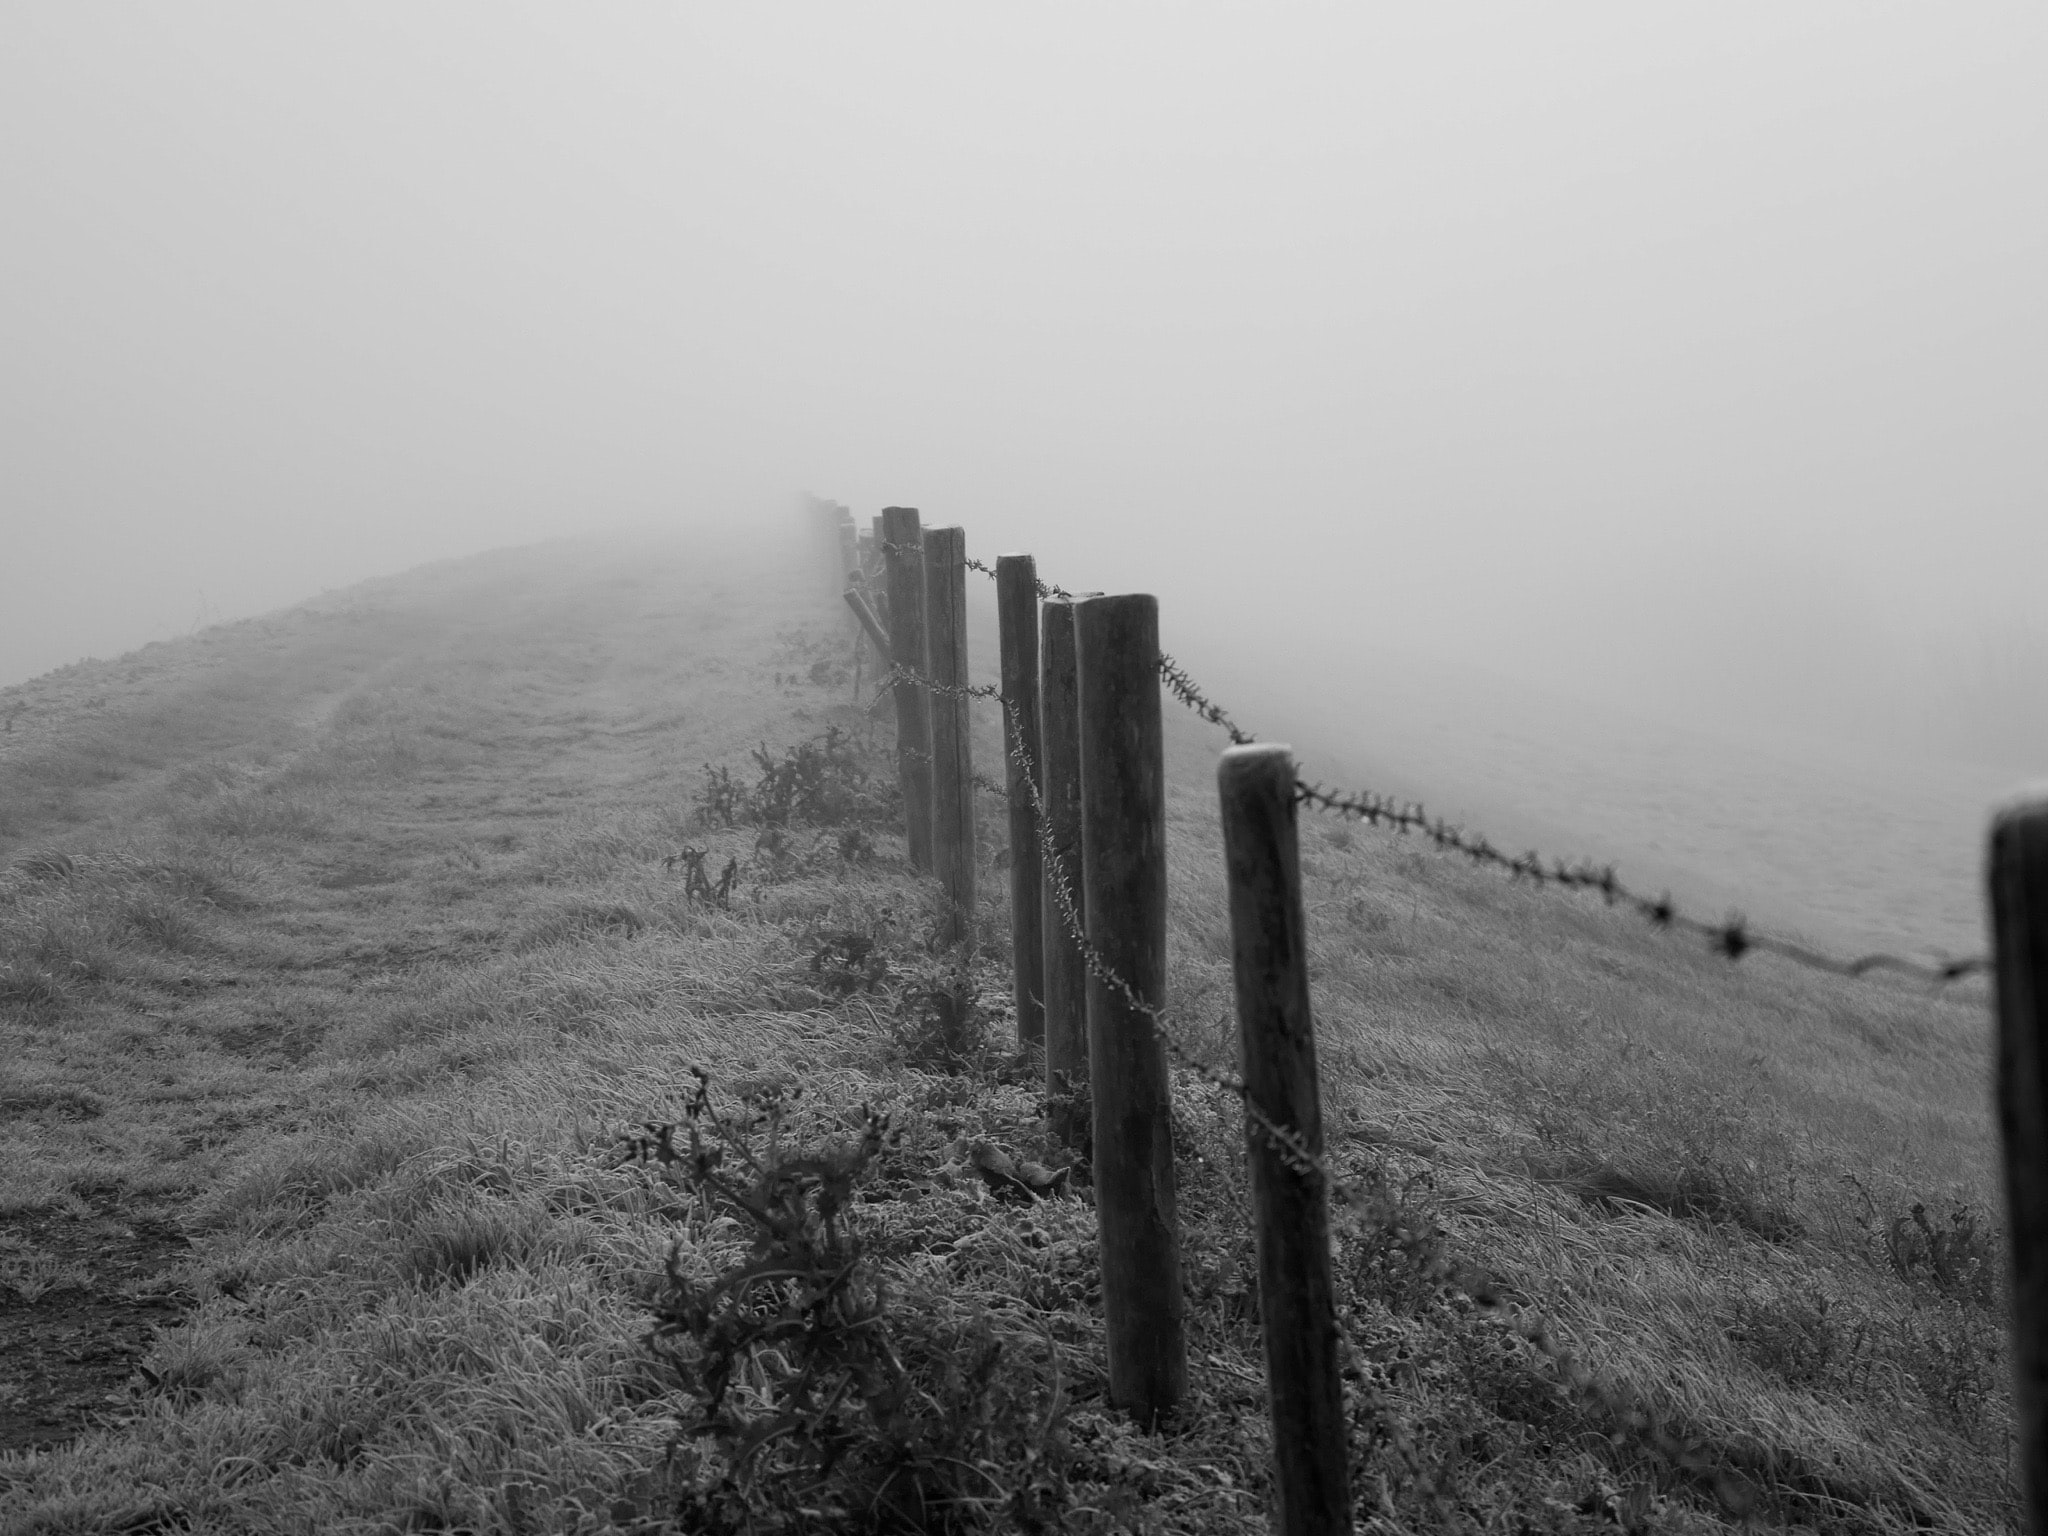 Fog over a barbed wire fence in a countryside field